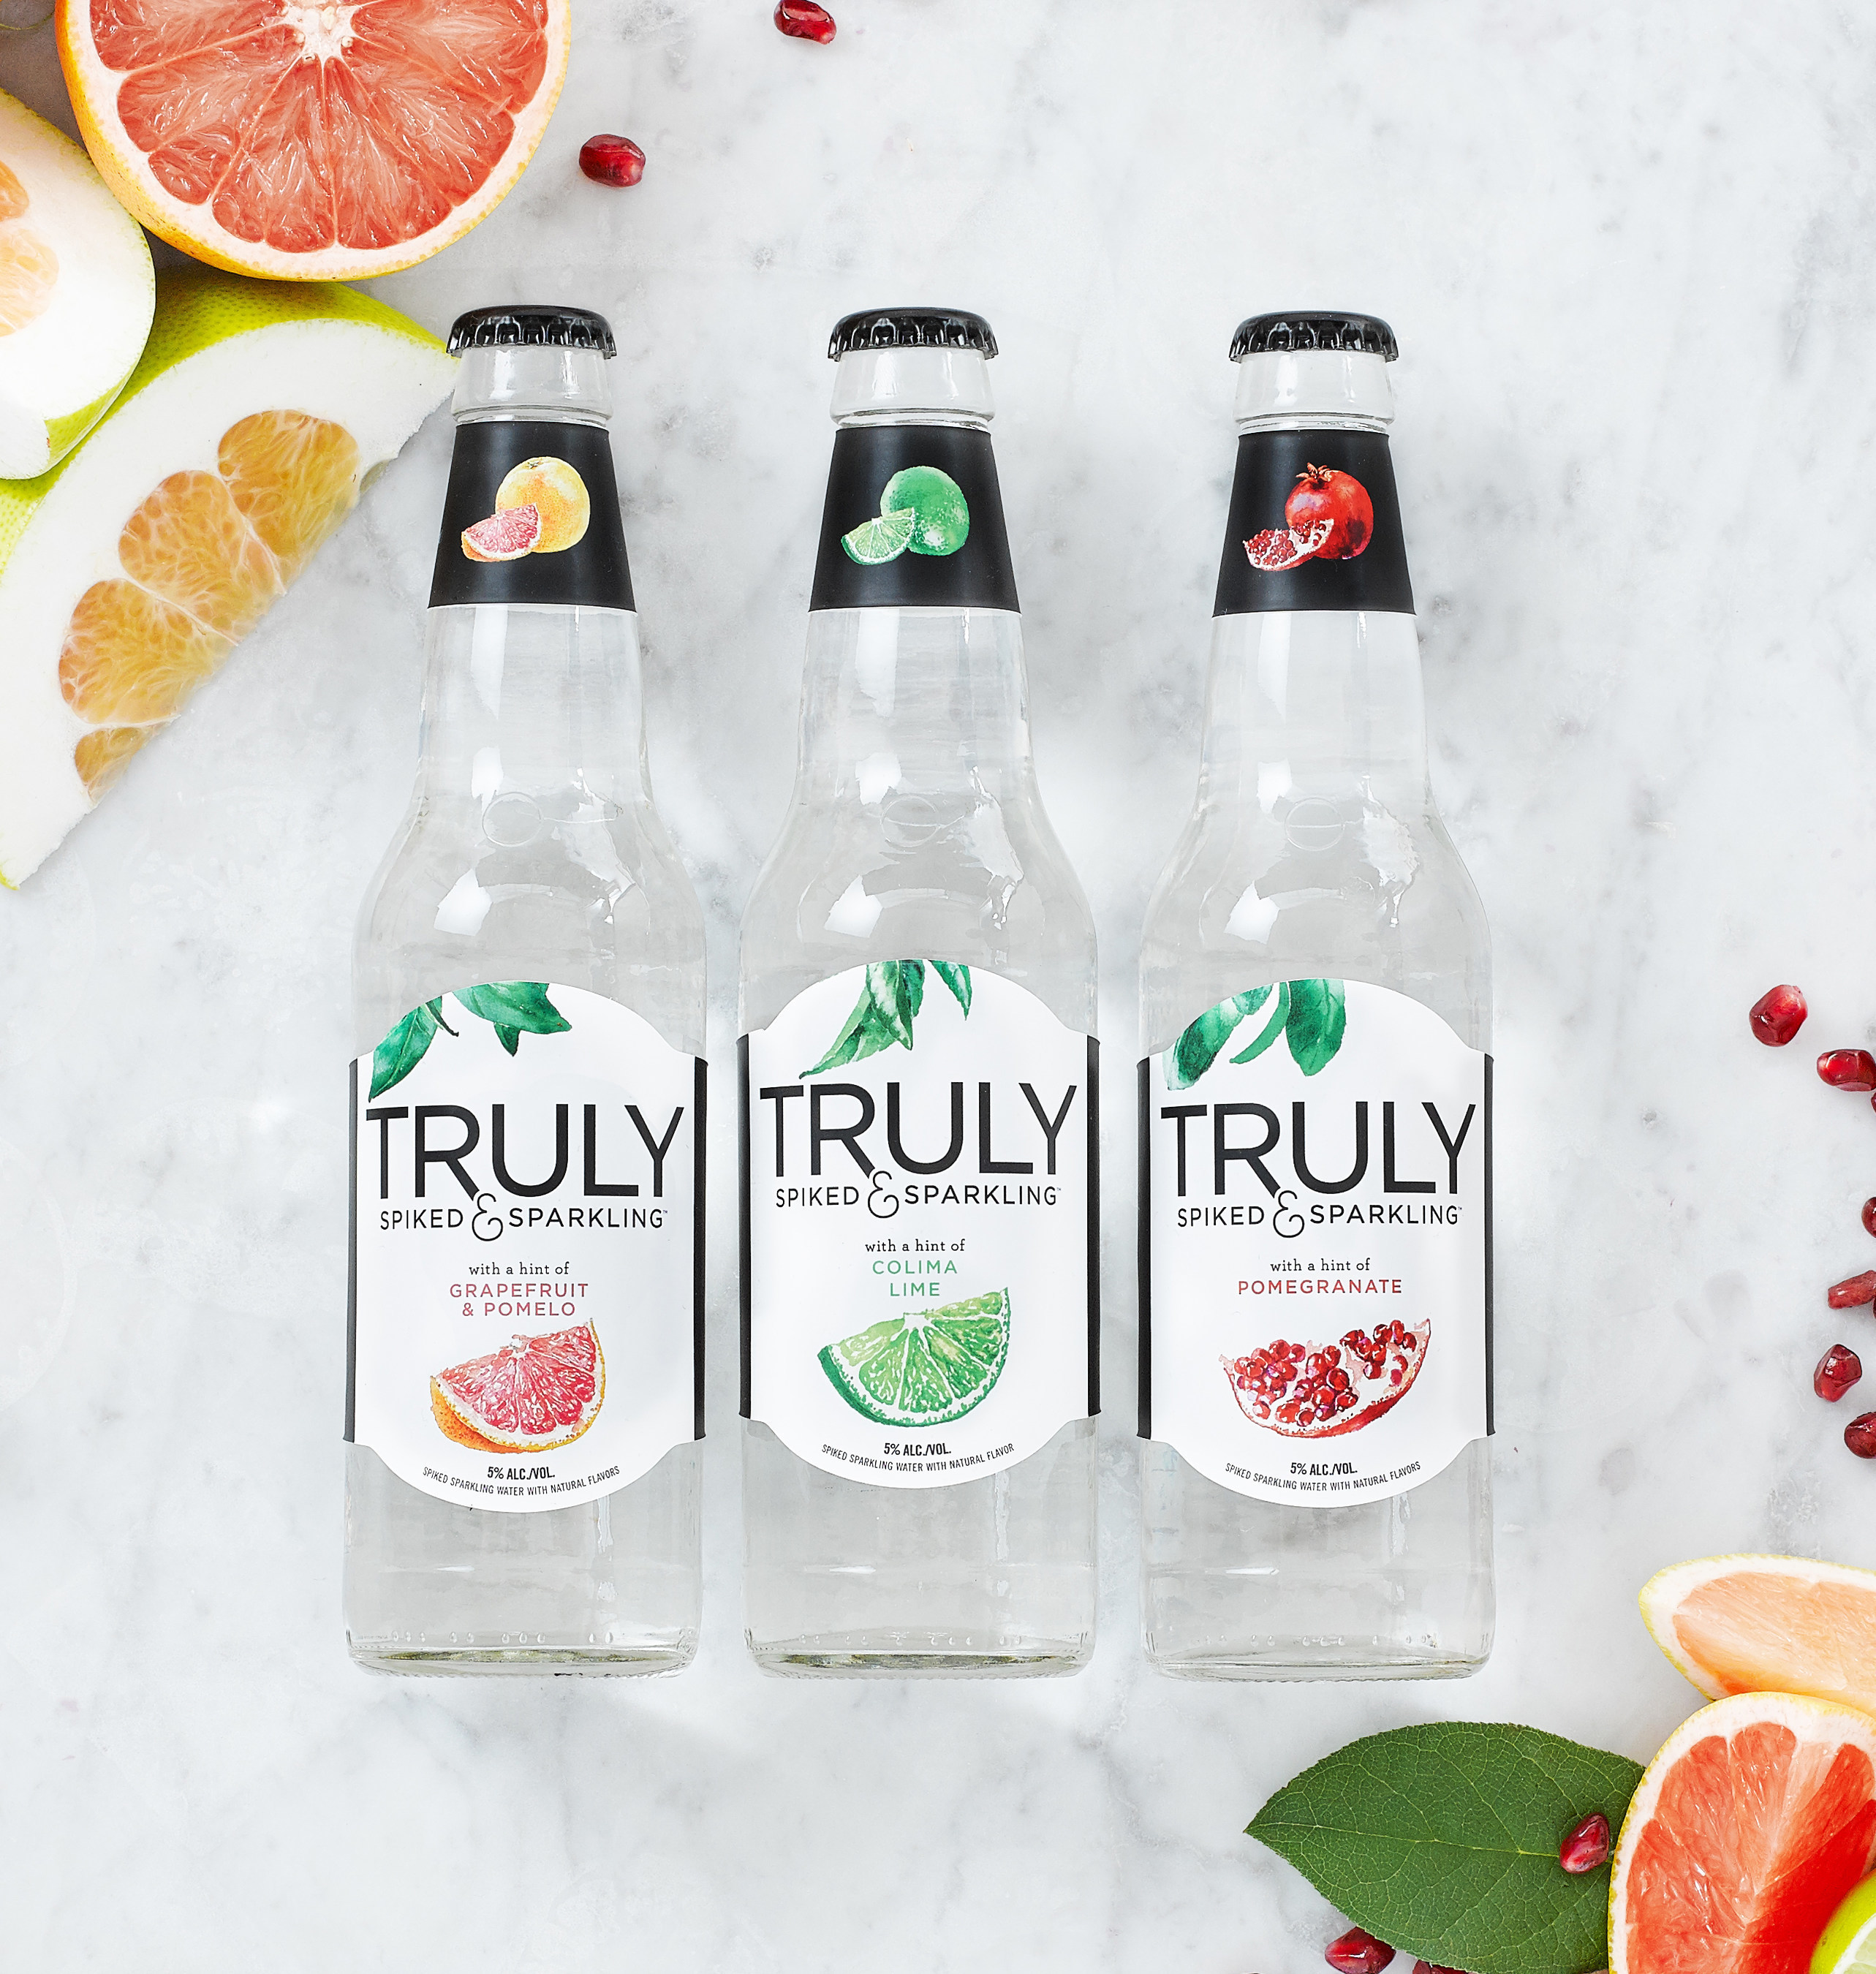 Introducing Truly Spiked & Sparkling: A New Way To Drink Sparkling